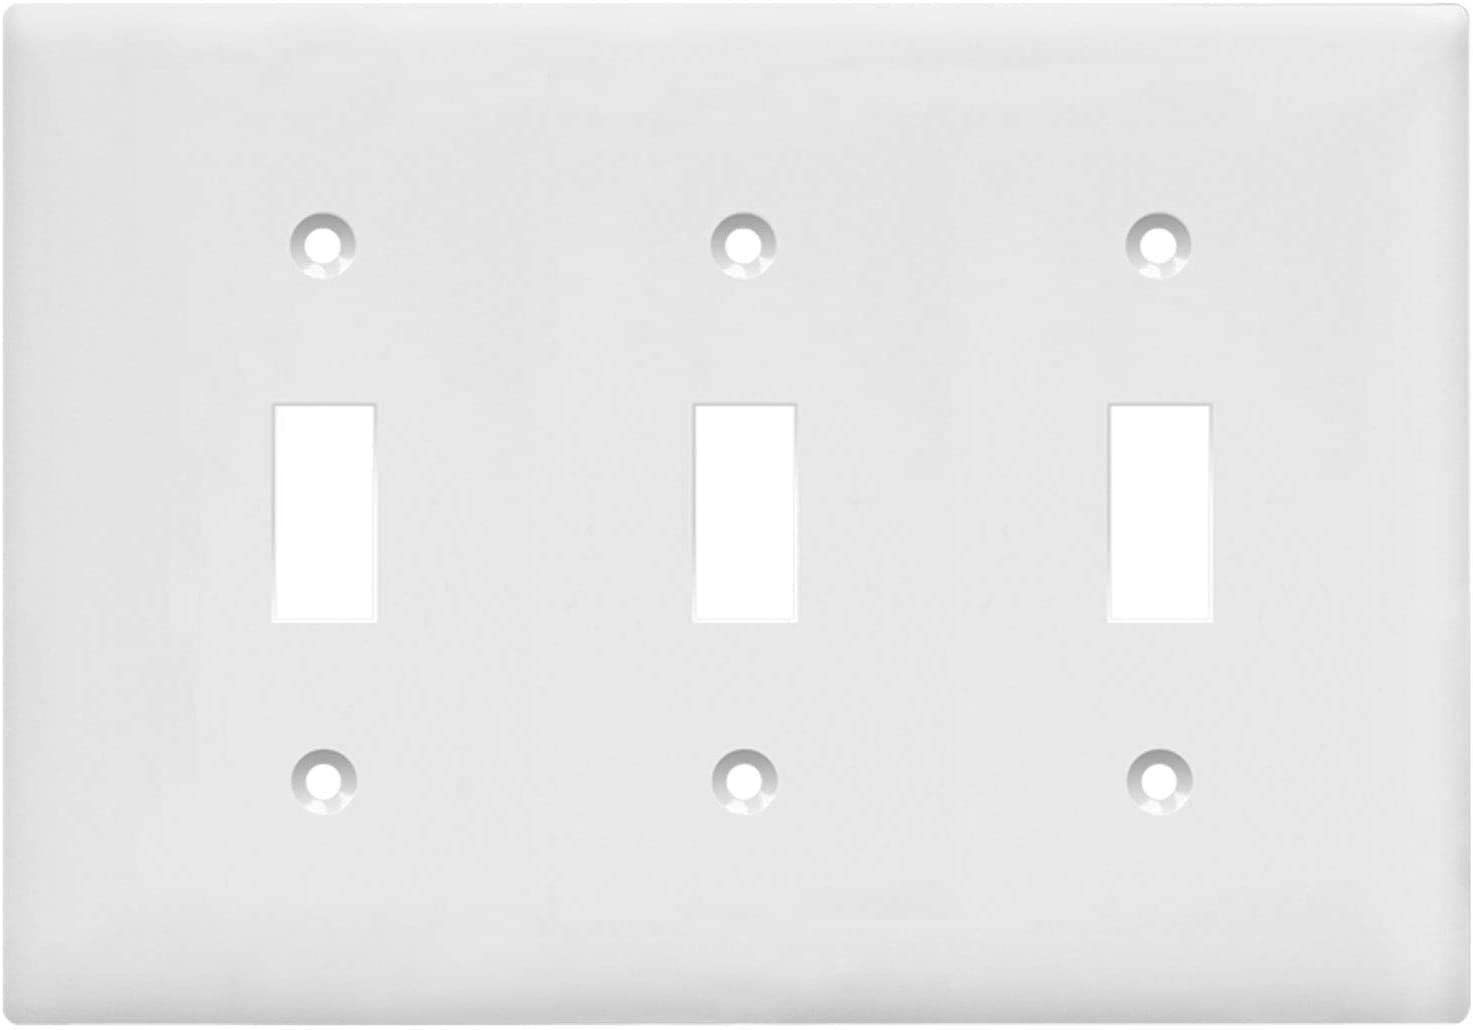 """ENERLITES Toggle Light Switch Wall Plate, Size 3-Gang 4.50"""" x 6.38"""", Unbreakable Polycarbonate Thermoplastic, 8813-W, White, 3 Gang"""